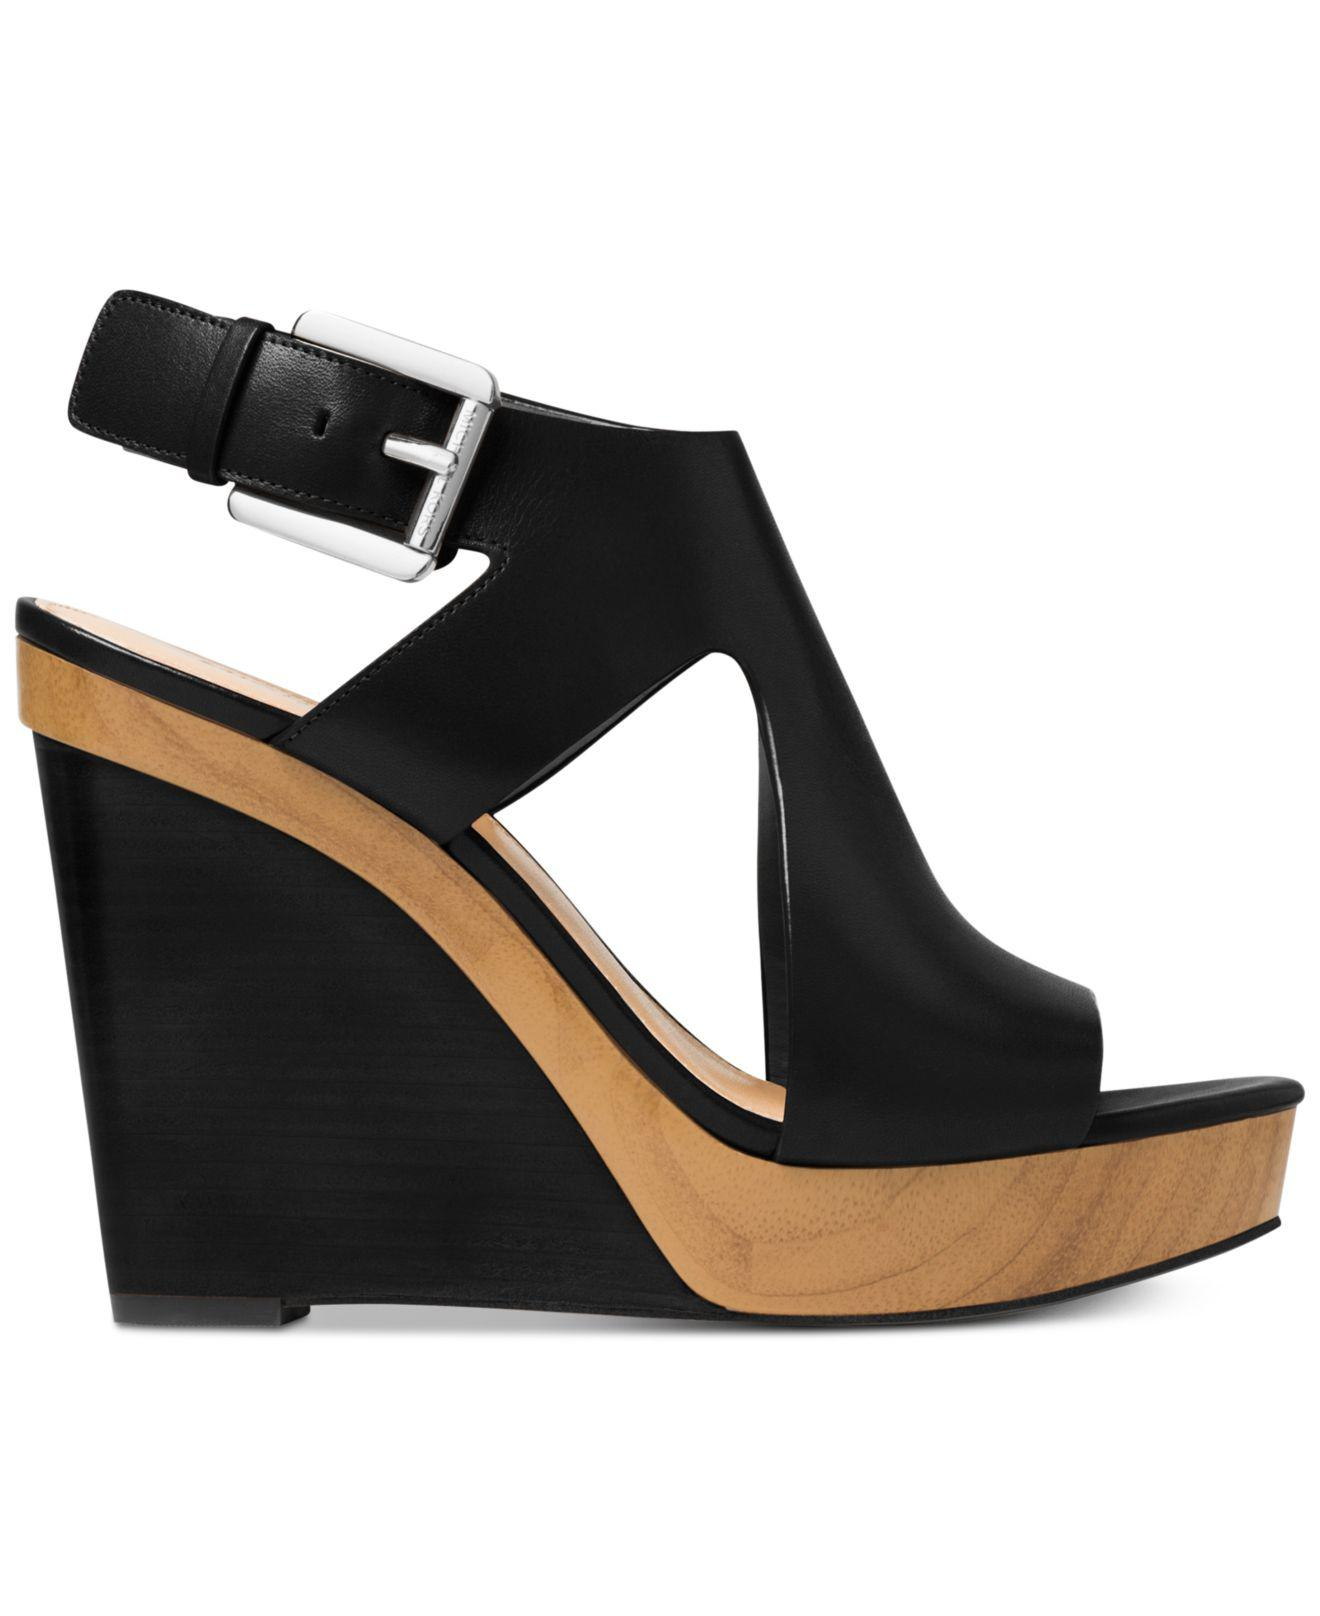 c2e451a6da06 Michael Kors Josephine Wedge Sandals in Black - Lyst